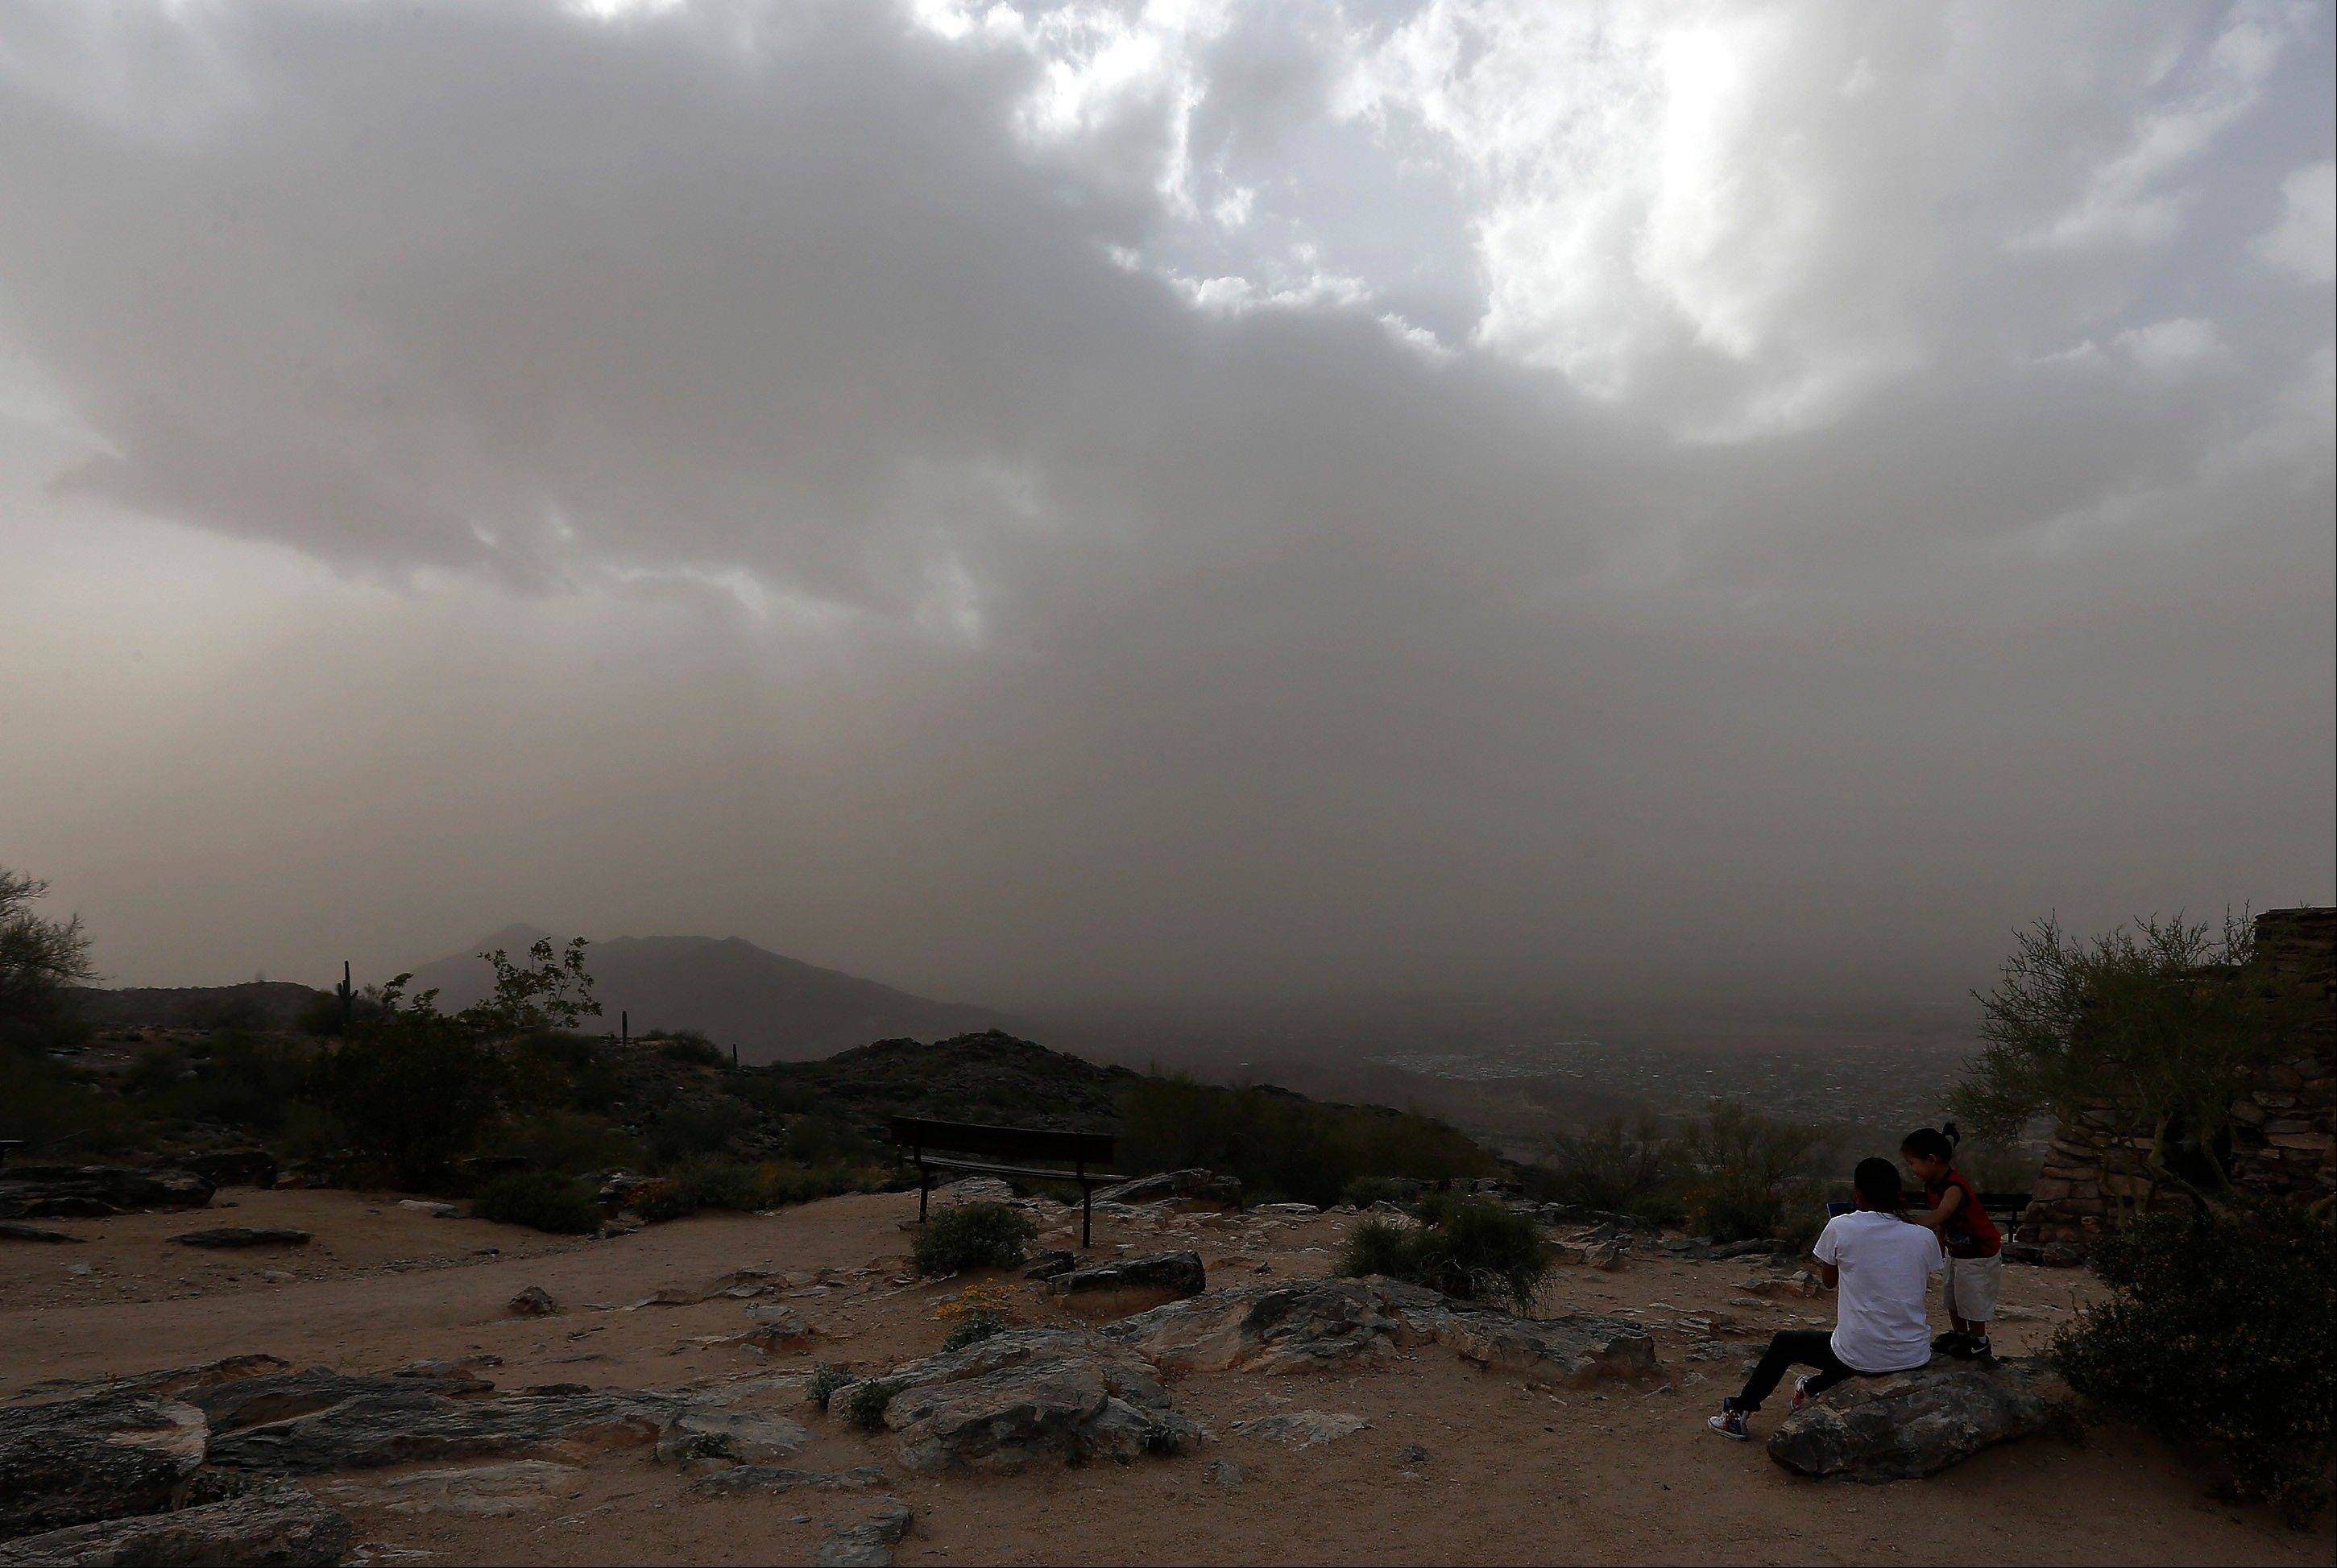 Tourists watch from the top of South Mountain as gusty winds envelop Phoenix in a dusty haze Monday, April 8, 2013.